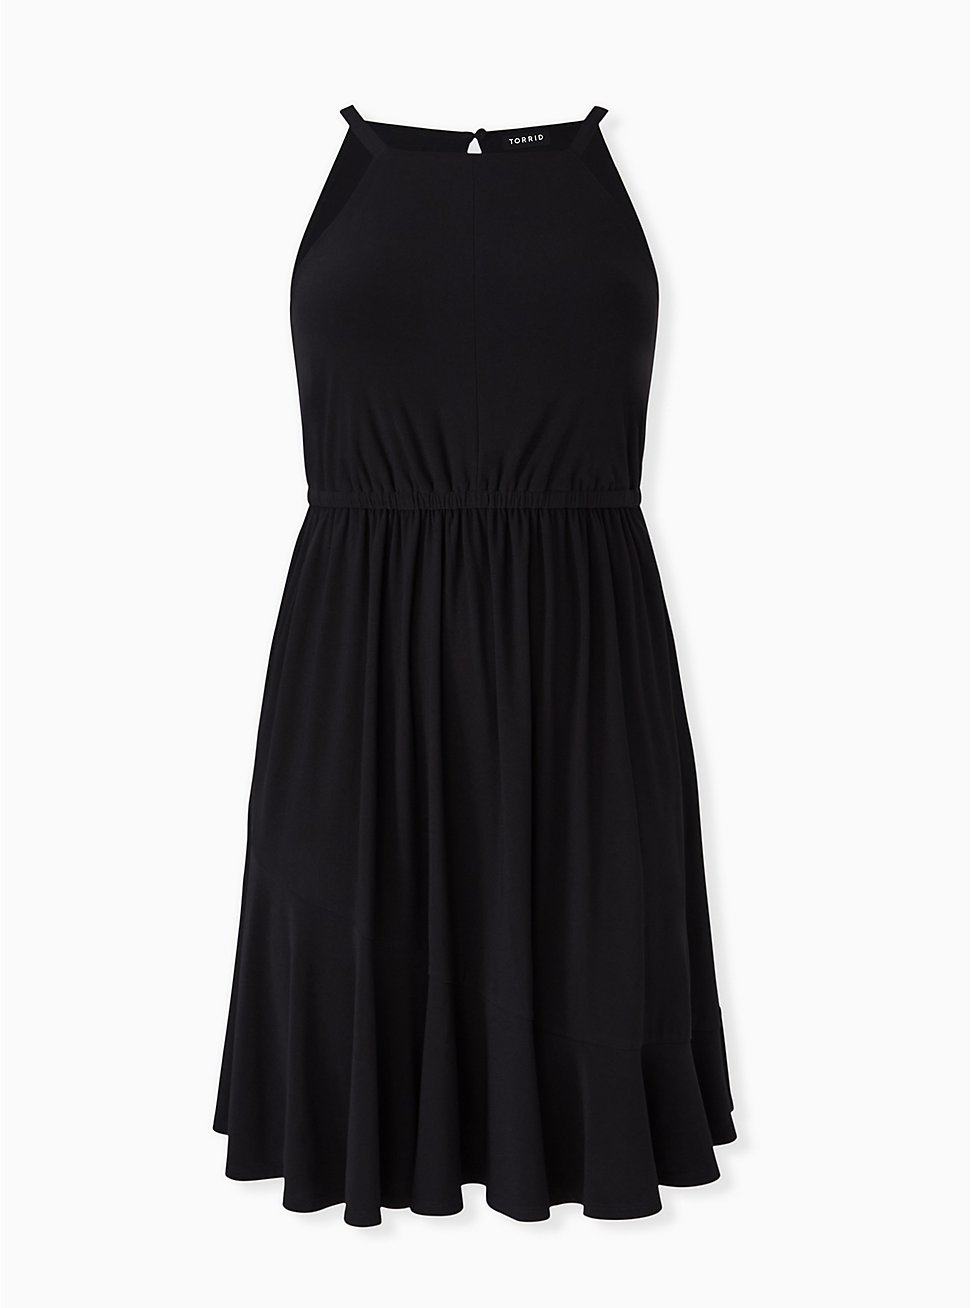 Black Crepe High Neck Skater Dress, DEEP BLACK, hi-res